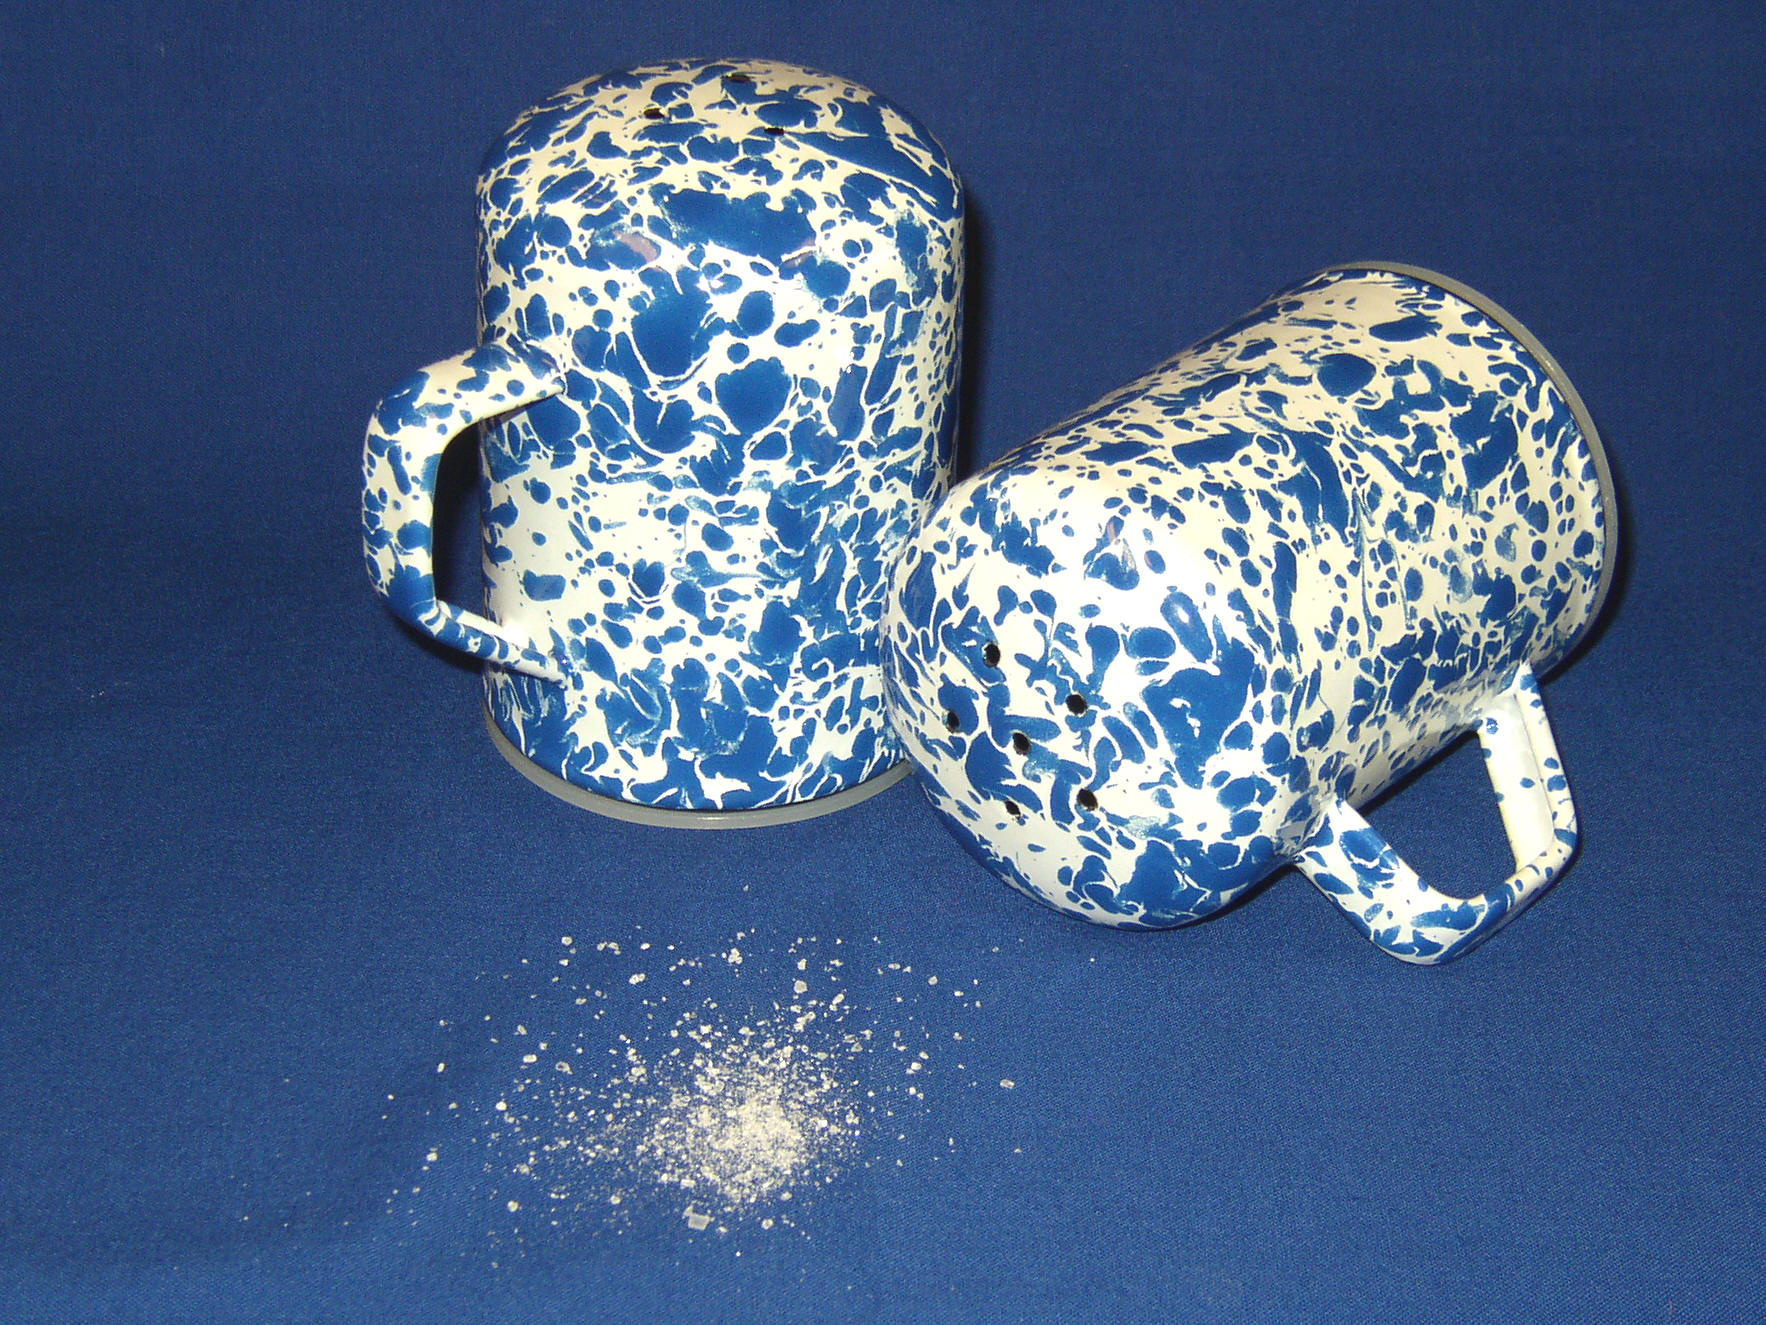 Enamel on steel salt and pepper set